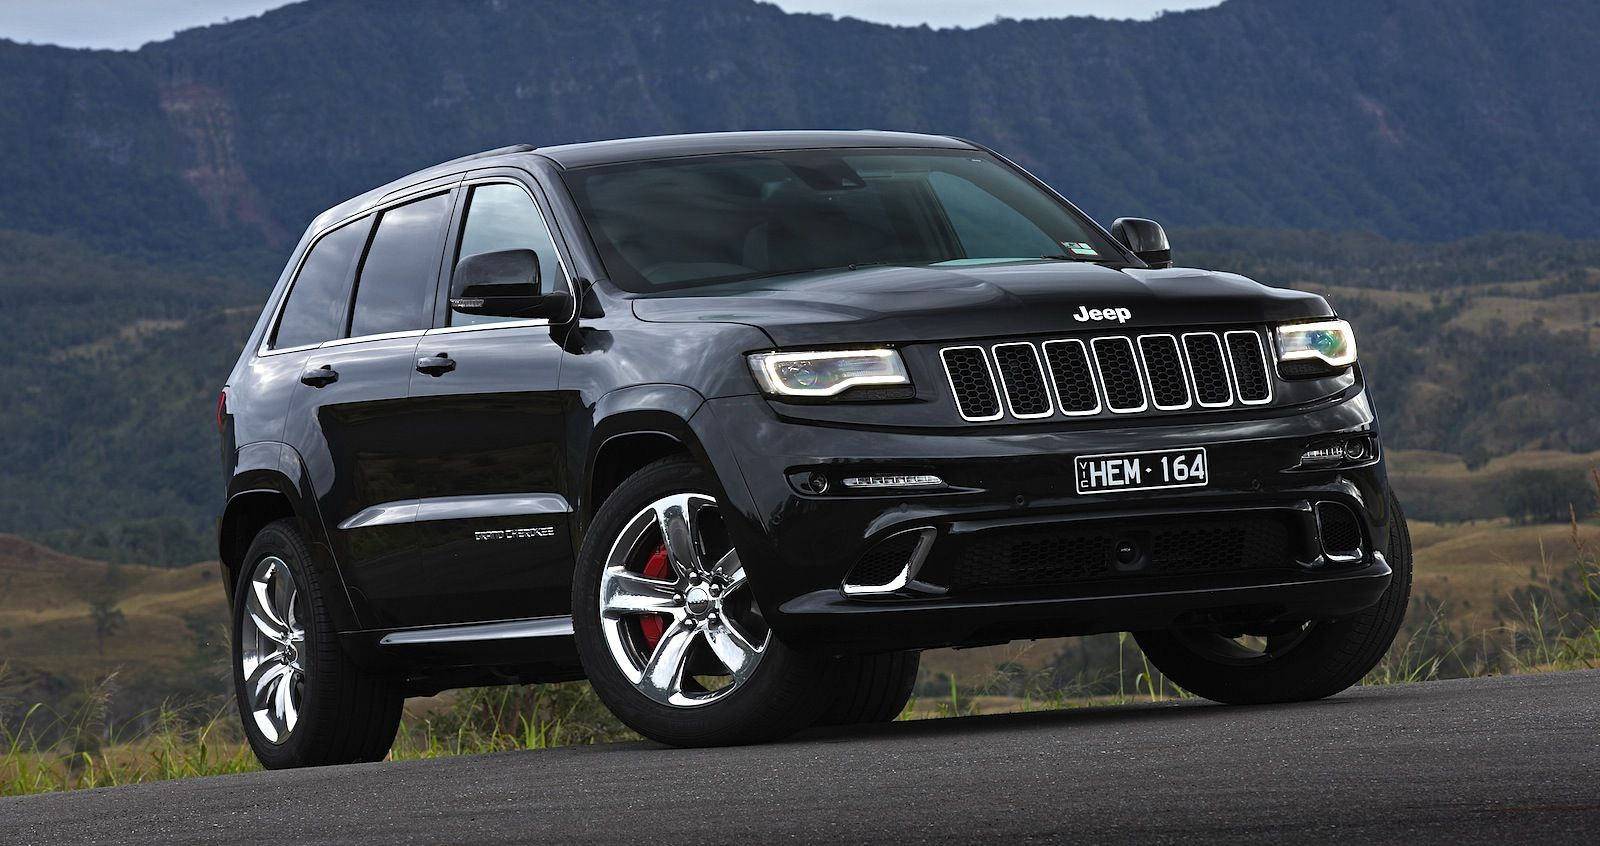 Jeep Grand Cherokee Wrangler Prices Rise By Up To 3000 Http Www Caradvice Com Au 296355 Jeep Grand Cherokee Wrangler Prices Jeep Grand Jeep Jeep Wagoneer